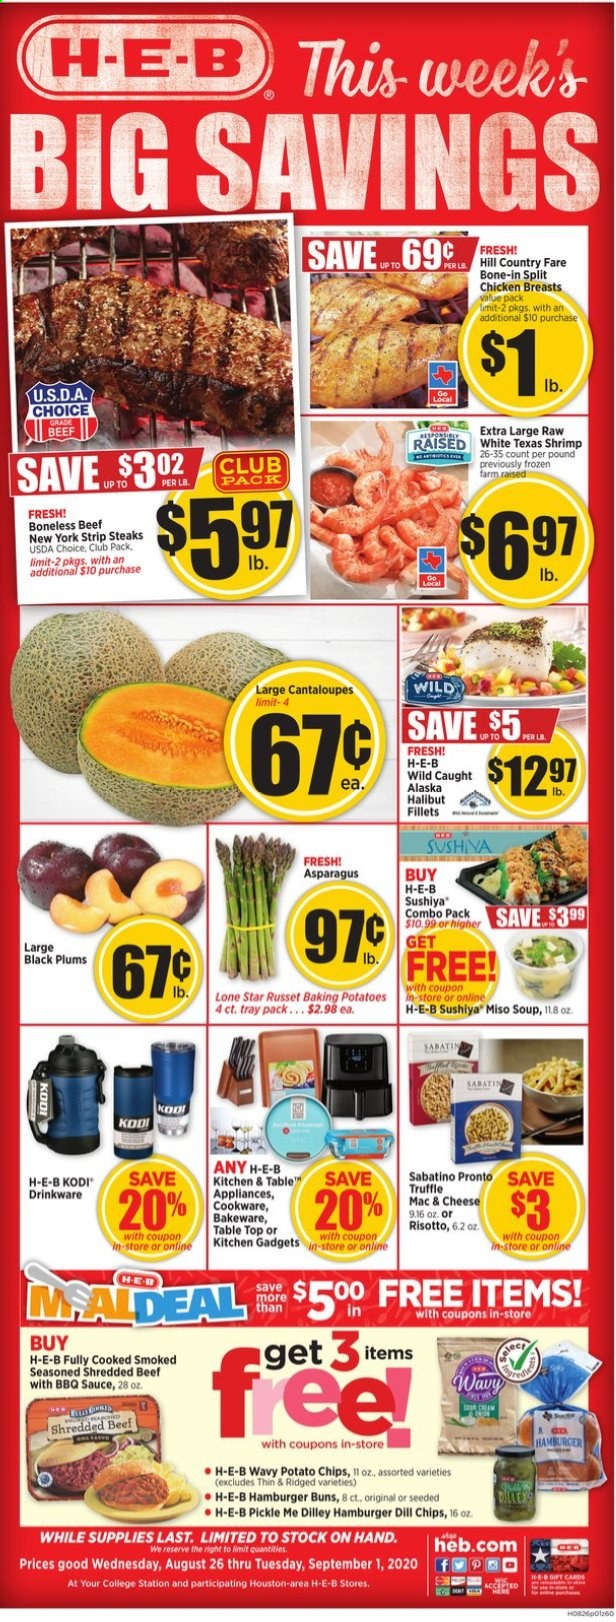 H-E-B Flyer - 08.26.2020 - 09.01.2020 - Sales products - baking potatoes, barbecue sauce, beef meat, cantaloupe, dill, drinkware, frozen, macaroni & cheese, miso, risotto, shrimp, table, tray, truffle, halibut, kitchen, plums, potato chips, potatoes, chicken, chicken breast, chips, cheese, burger; burgers, soup, hamburger, sauce, cd, shrimps, chicken breasts, barbecue. Page 1.